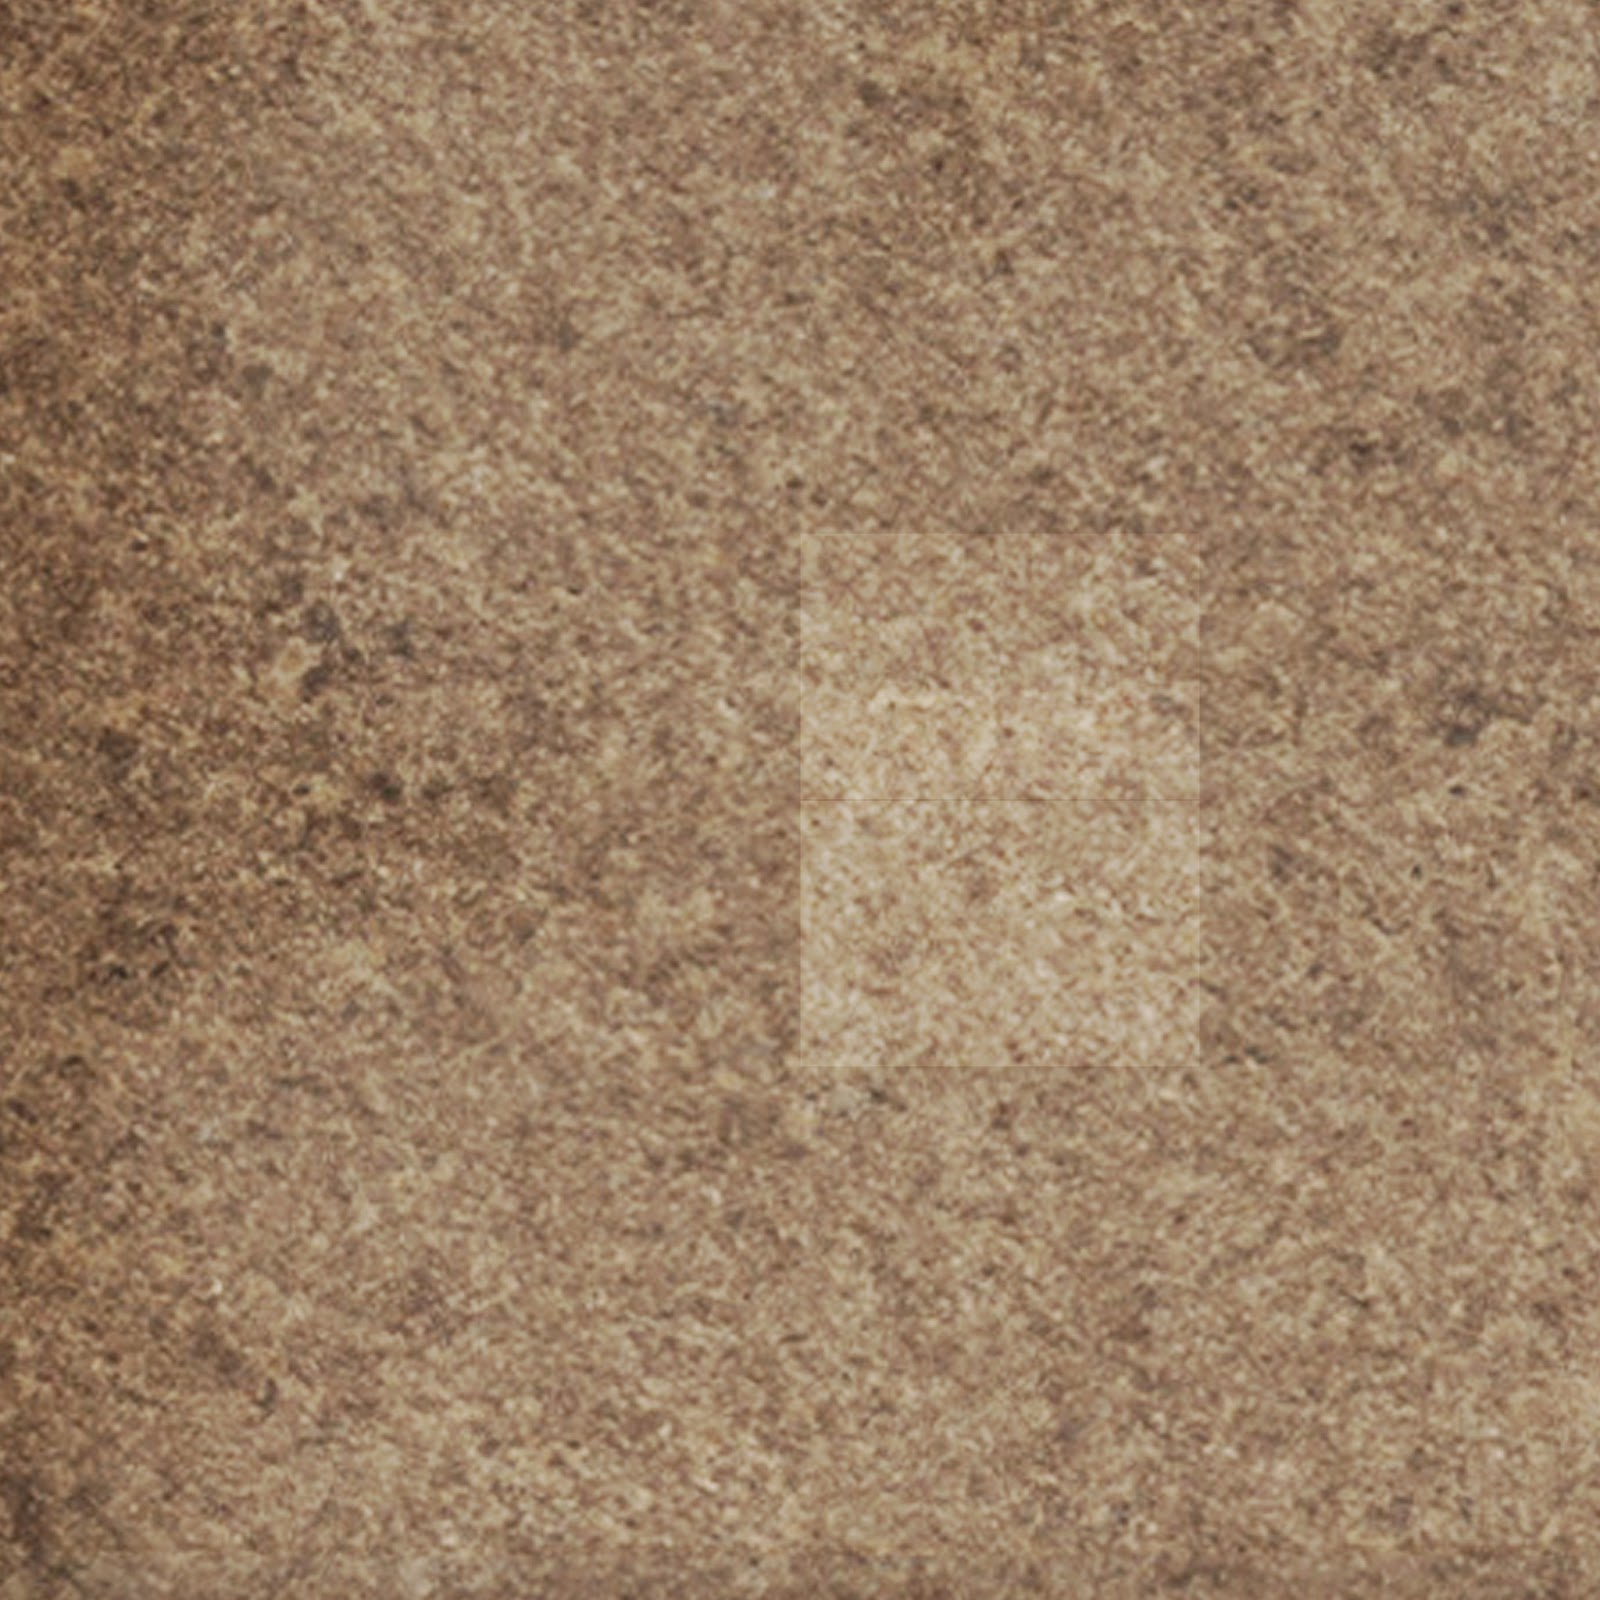 Textured Stone Pillar : Over and out stone texture pillar component